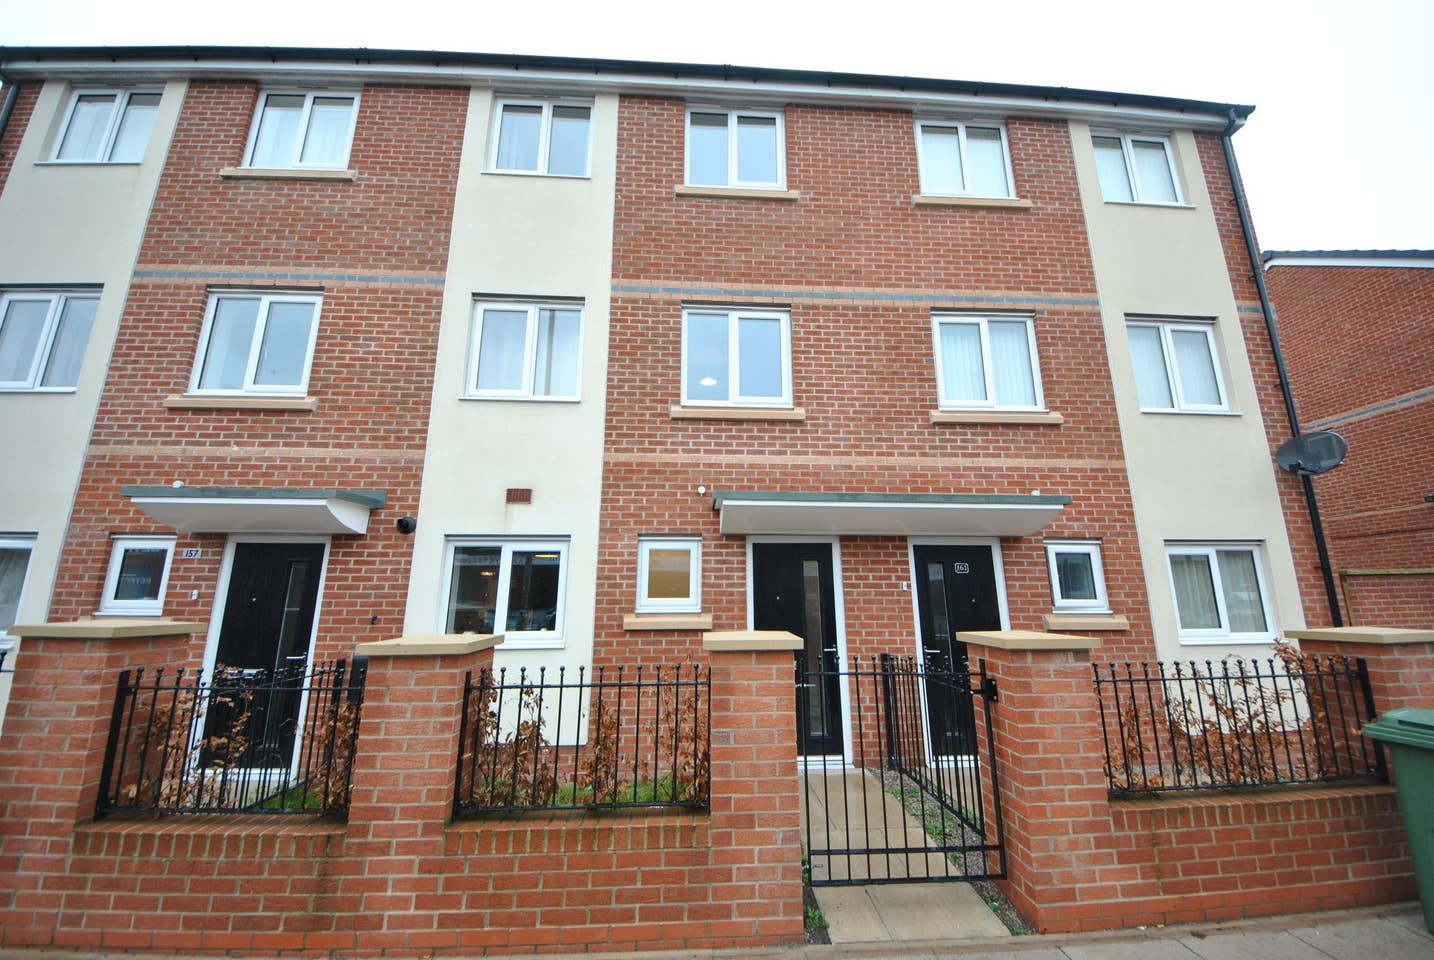 6 Beds, 4 Bedroom, 2 Bath – Oakfield Road, Anfield, Liverpool, L5 1AE